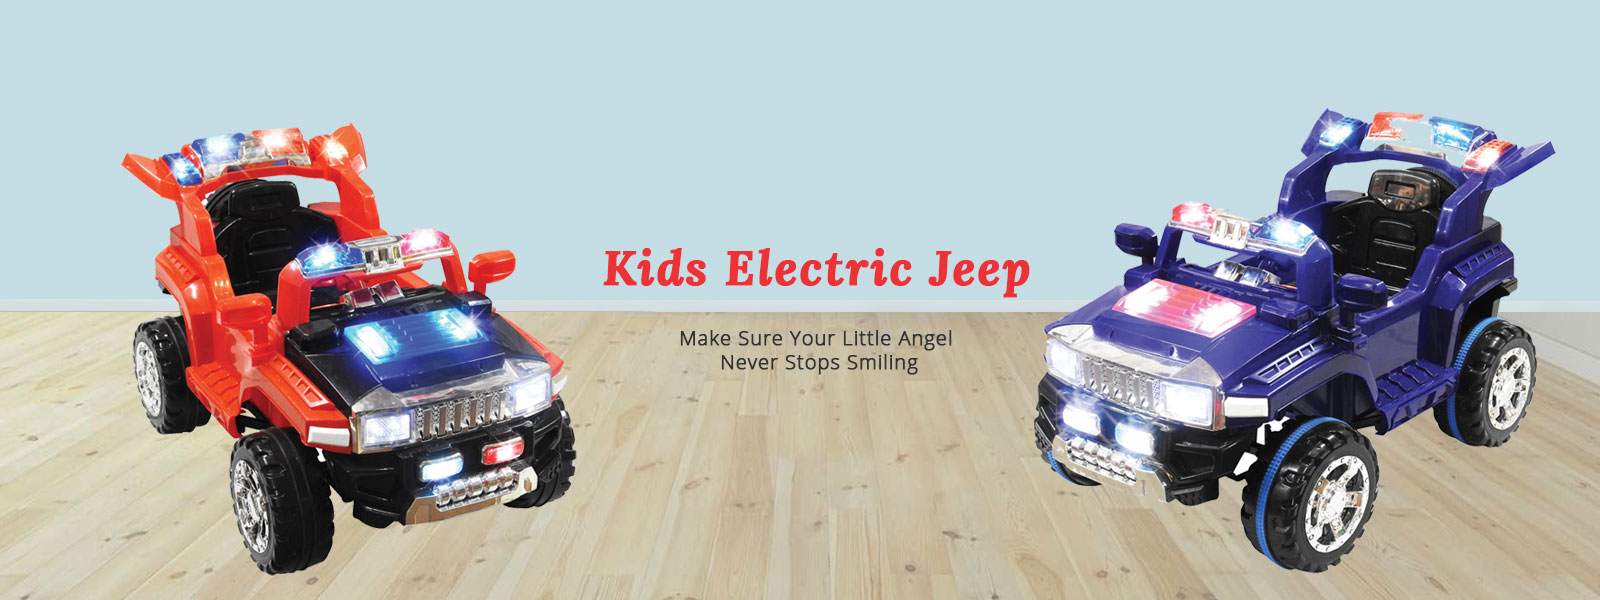 Kids Electric Jeep Manufacturers in Agra